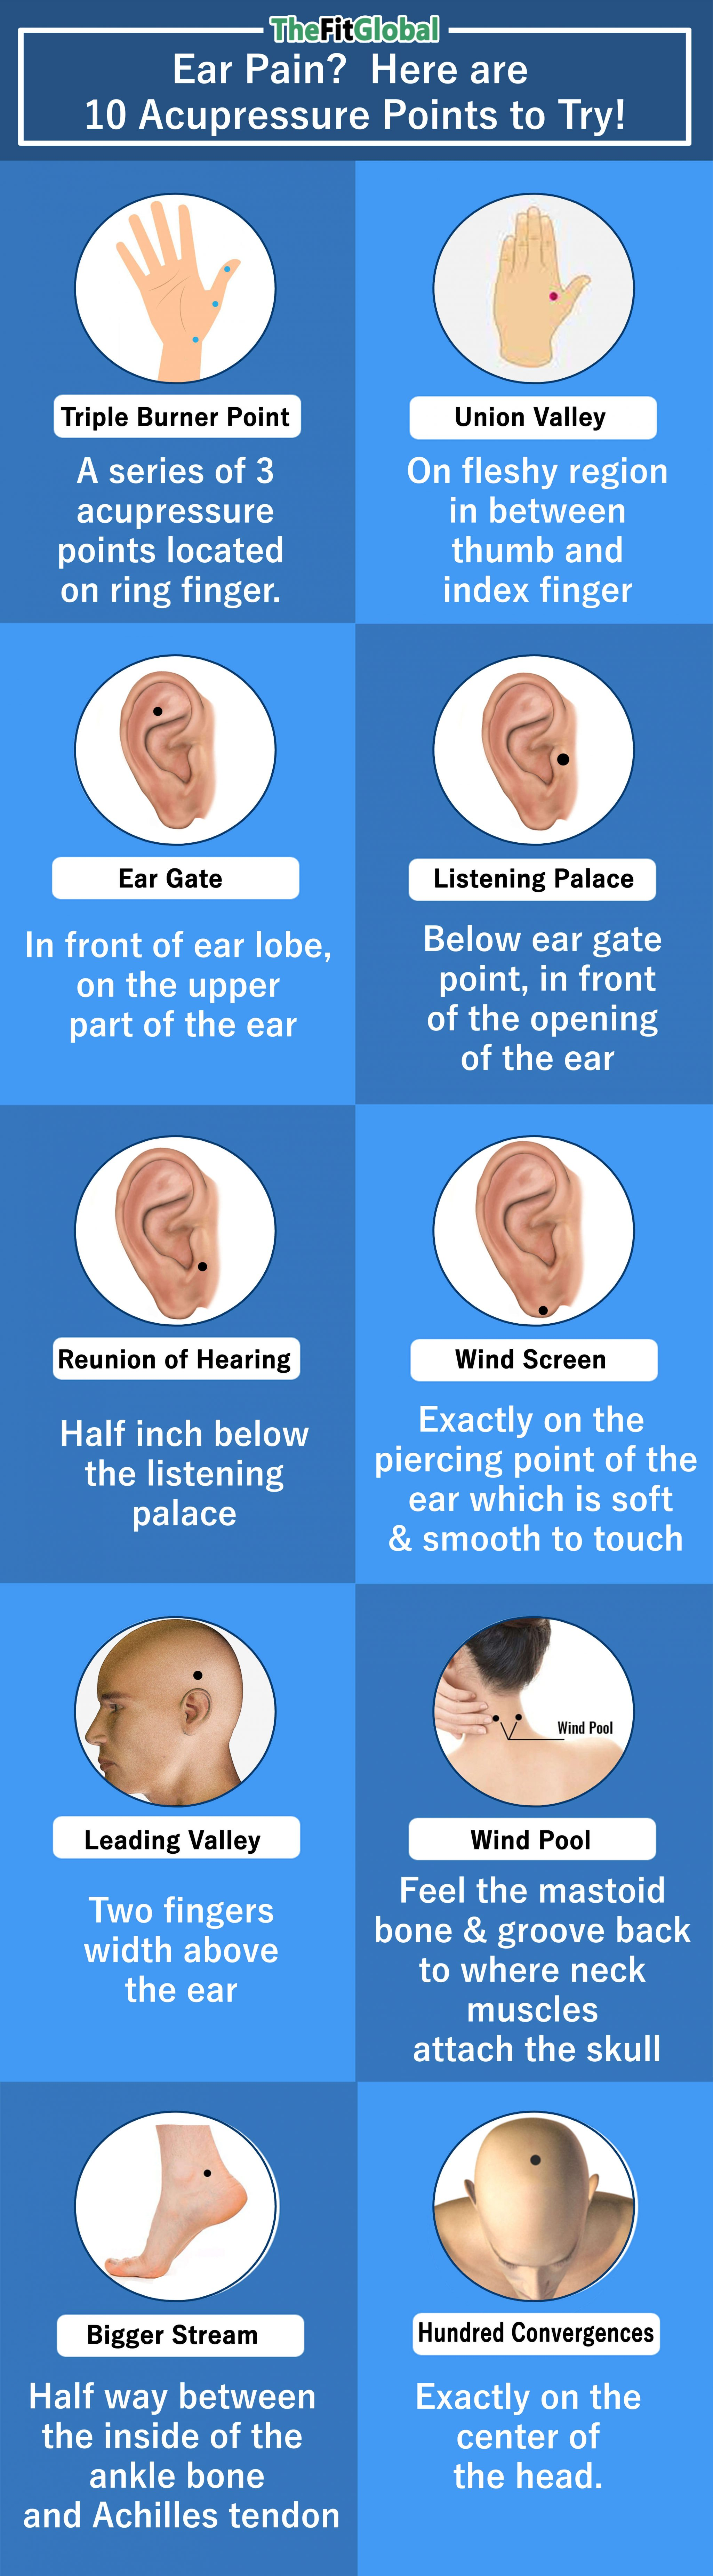 10 Acupressure Points For Your Ear Infection | Infographic ...